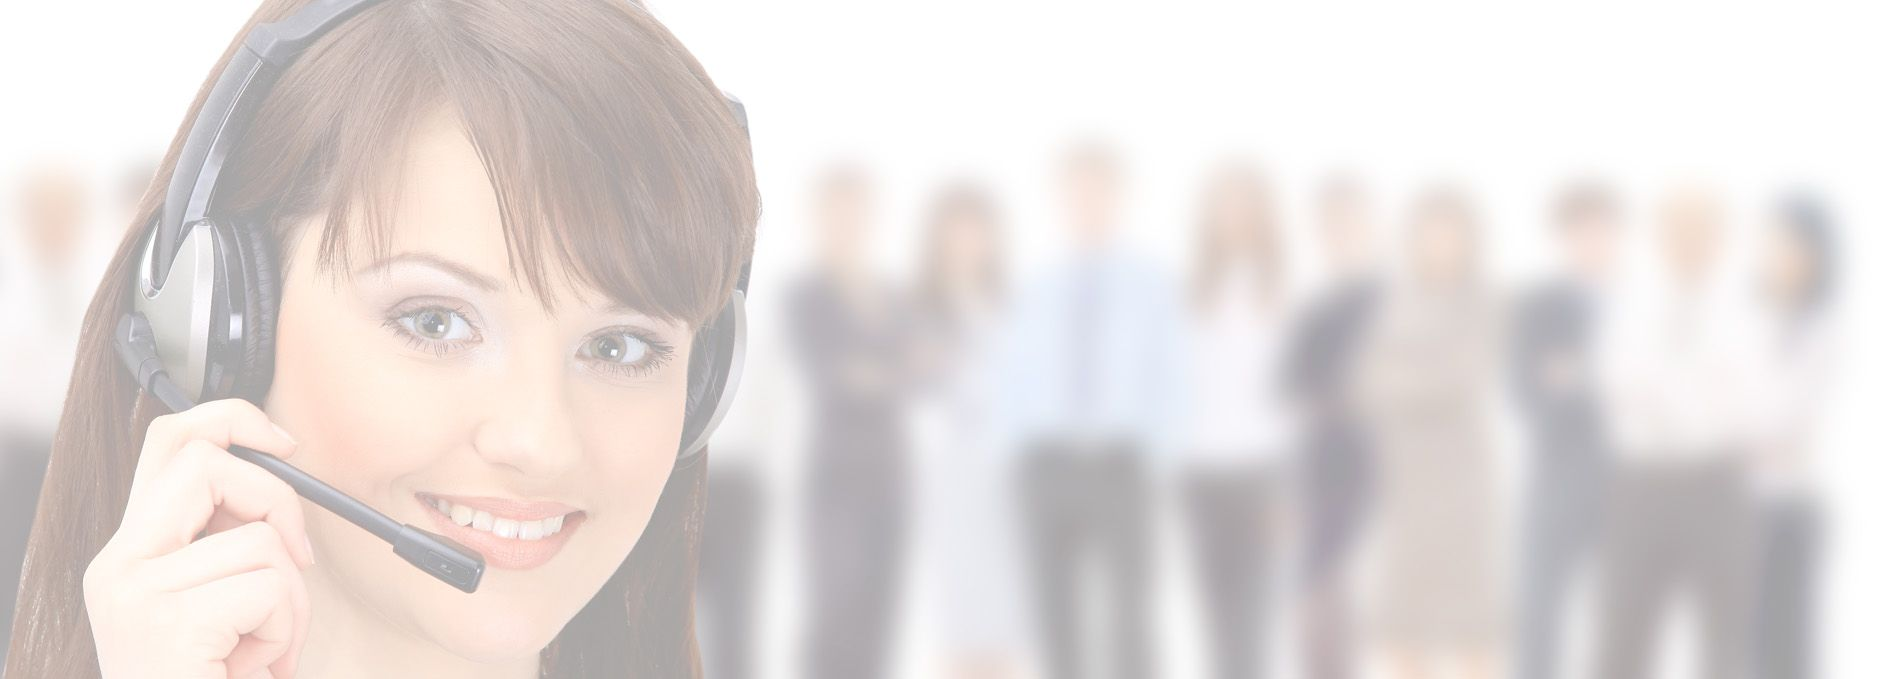 Call our local experienced Minnesota insurance agents. Yes, we are right here in Minnesota.